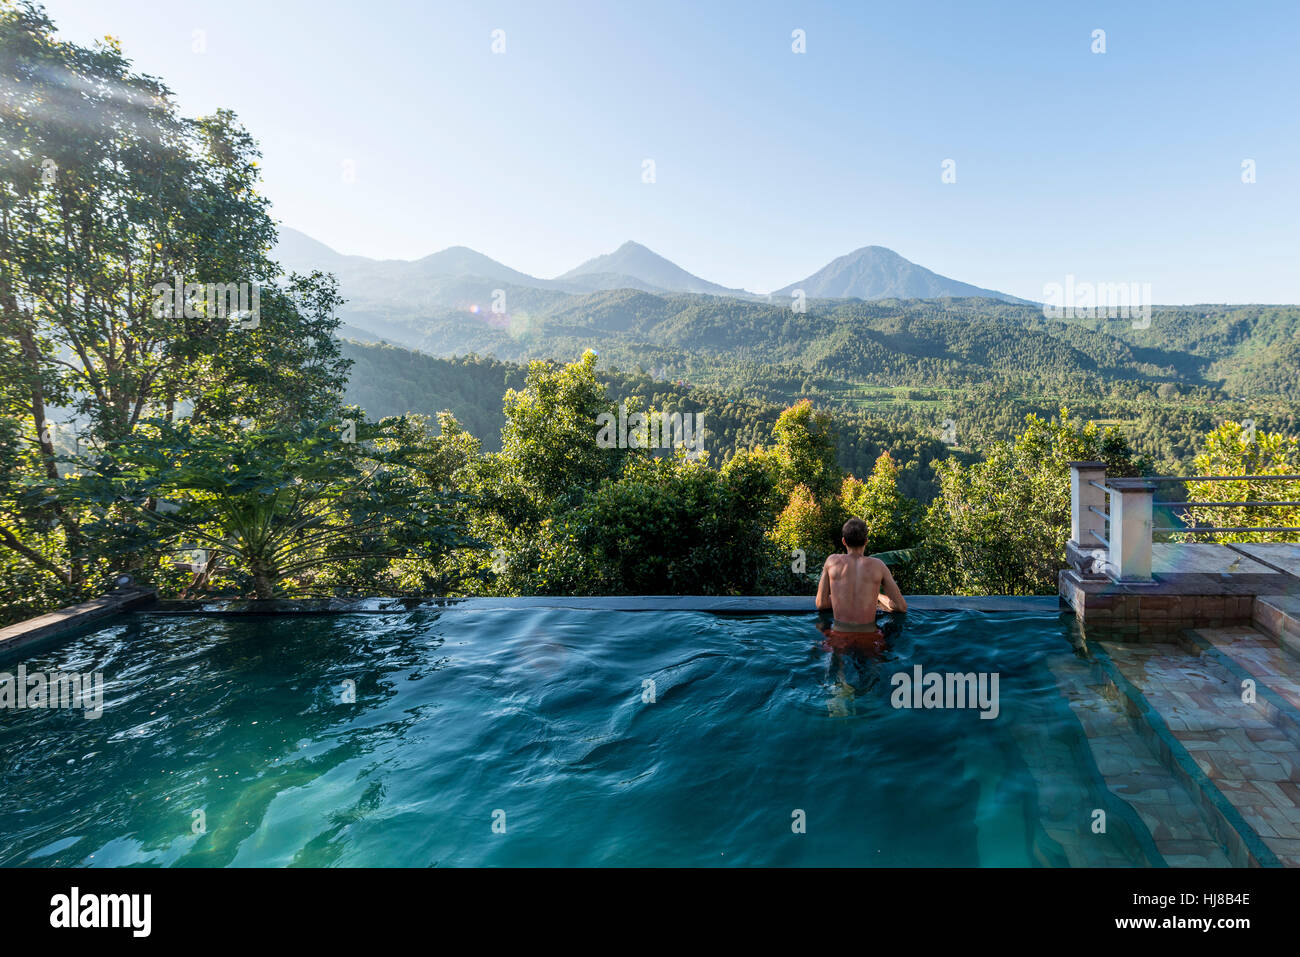 Man looking over the landscape, pool, Munduk, Bali, Indonesia Stock Photo